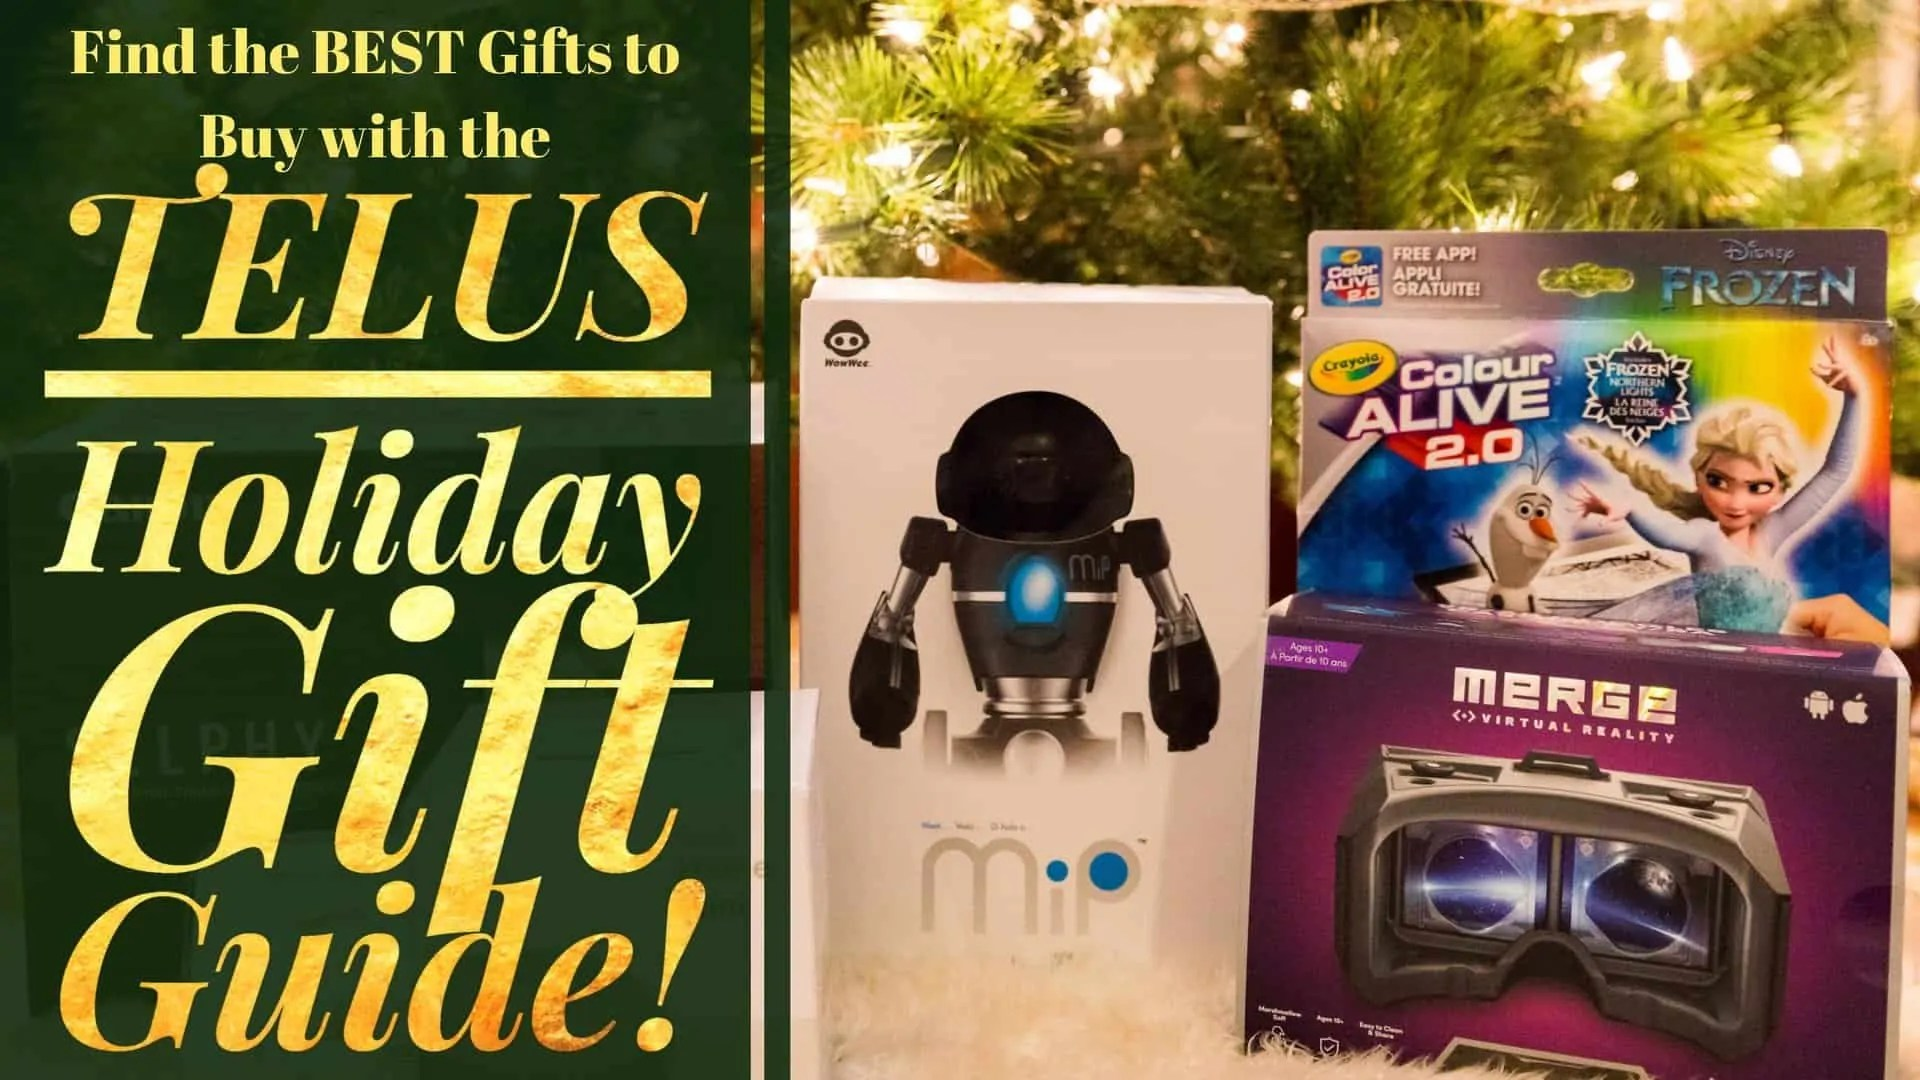 Find the BEST Gifts to Buy with the TELUS Holiday Gift Guide! (Featured Image)